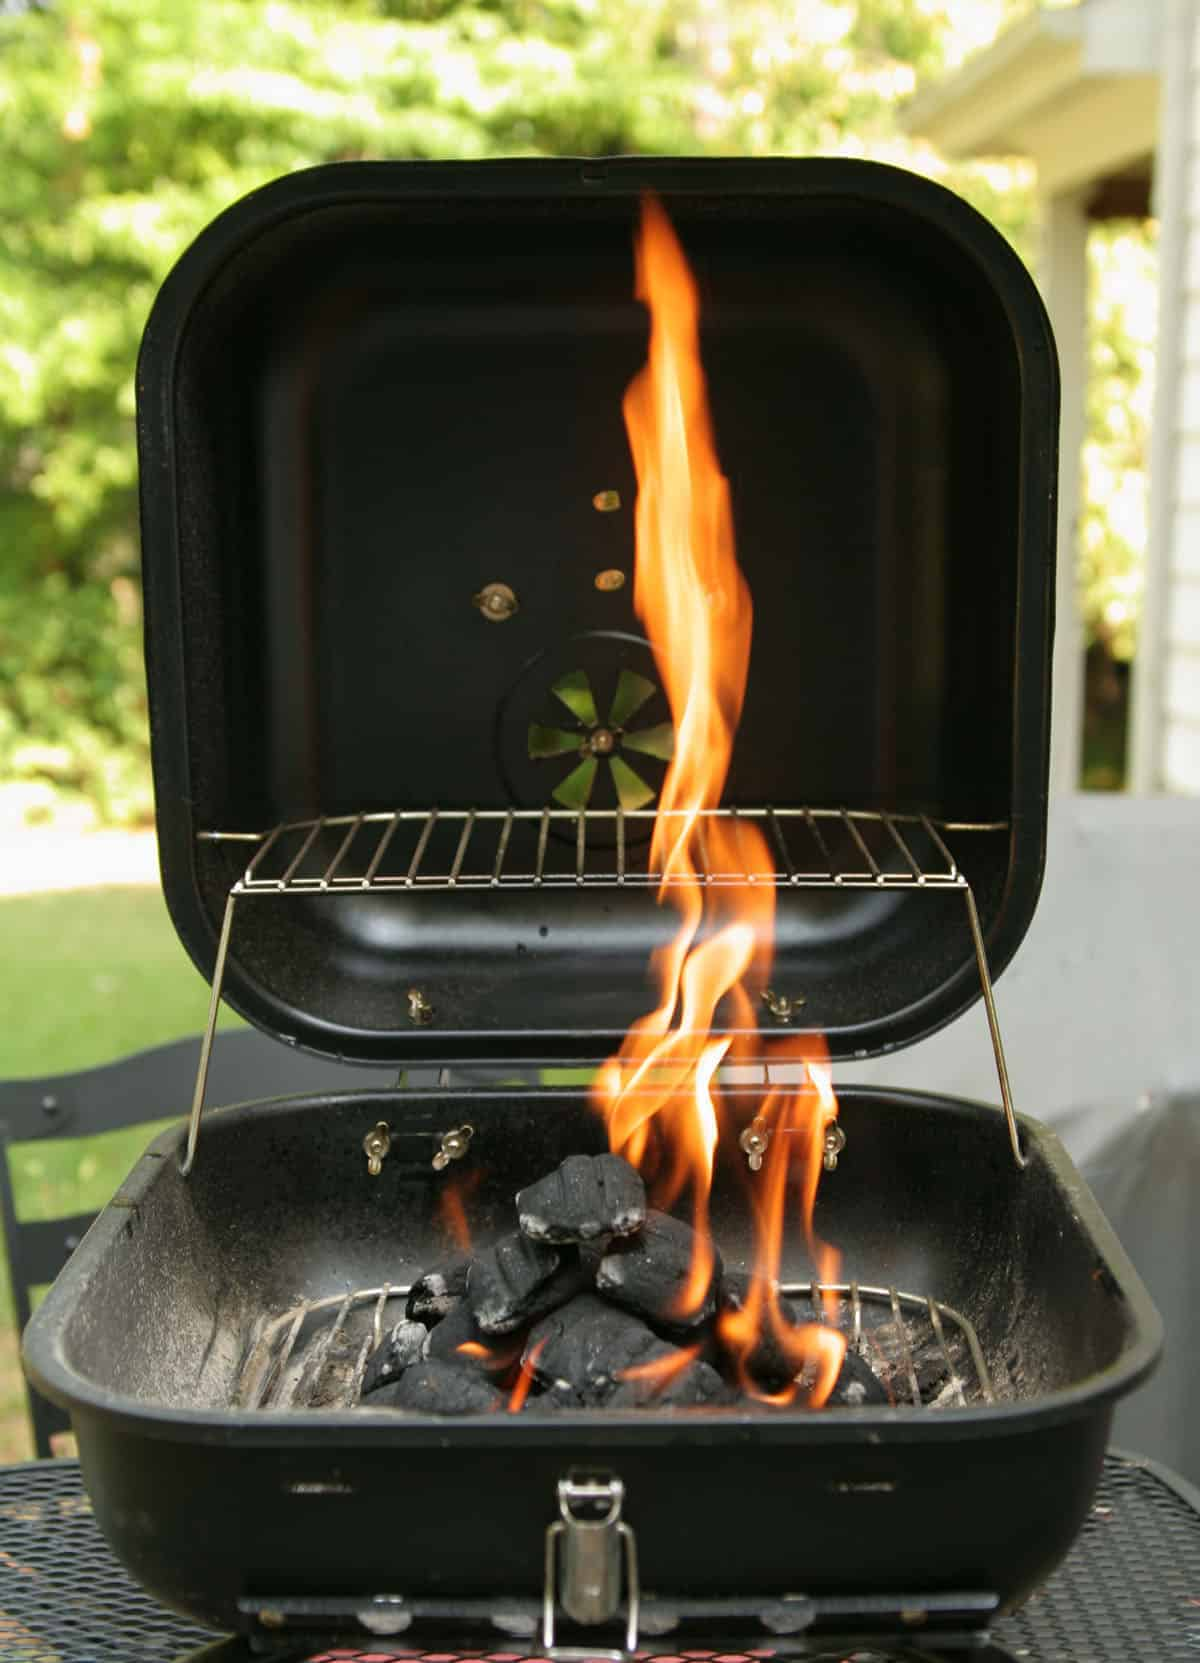 charcoal grill getting hot